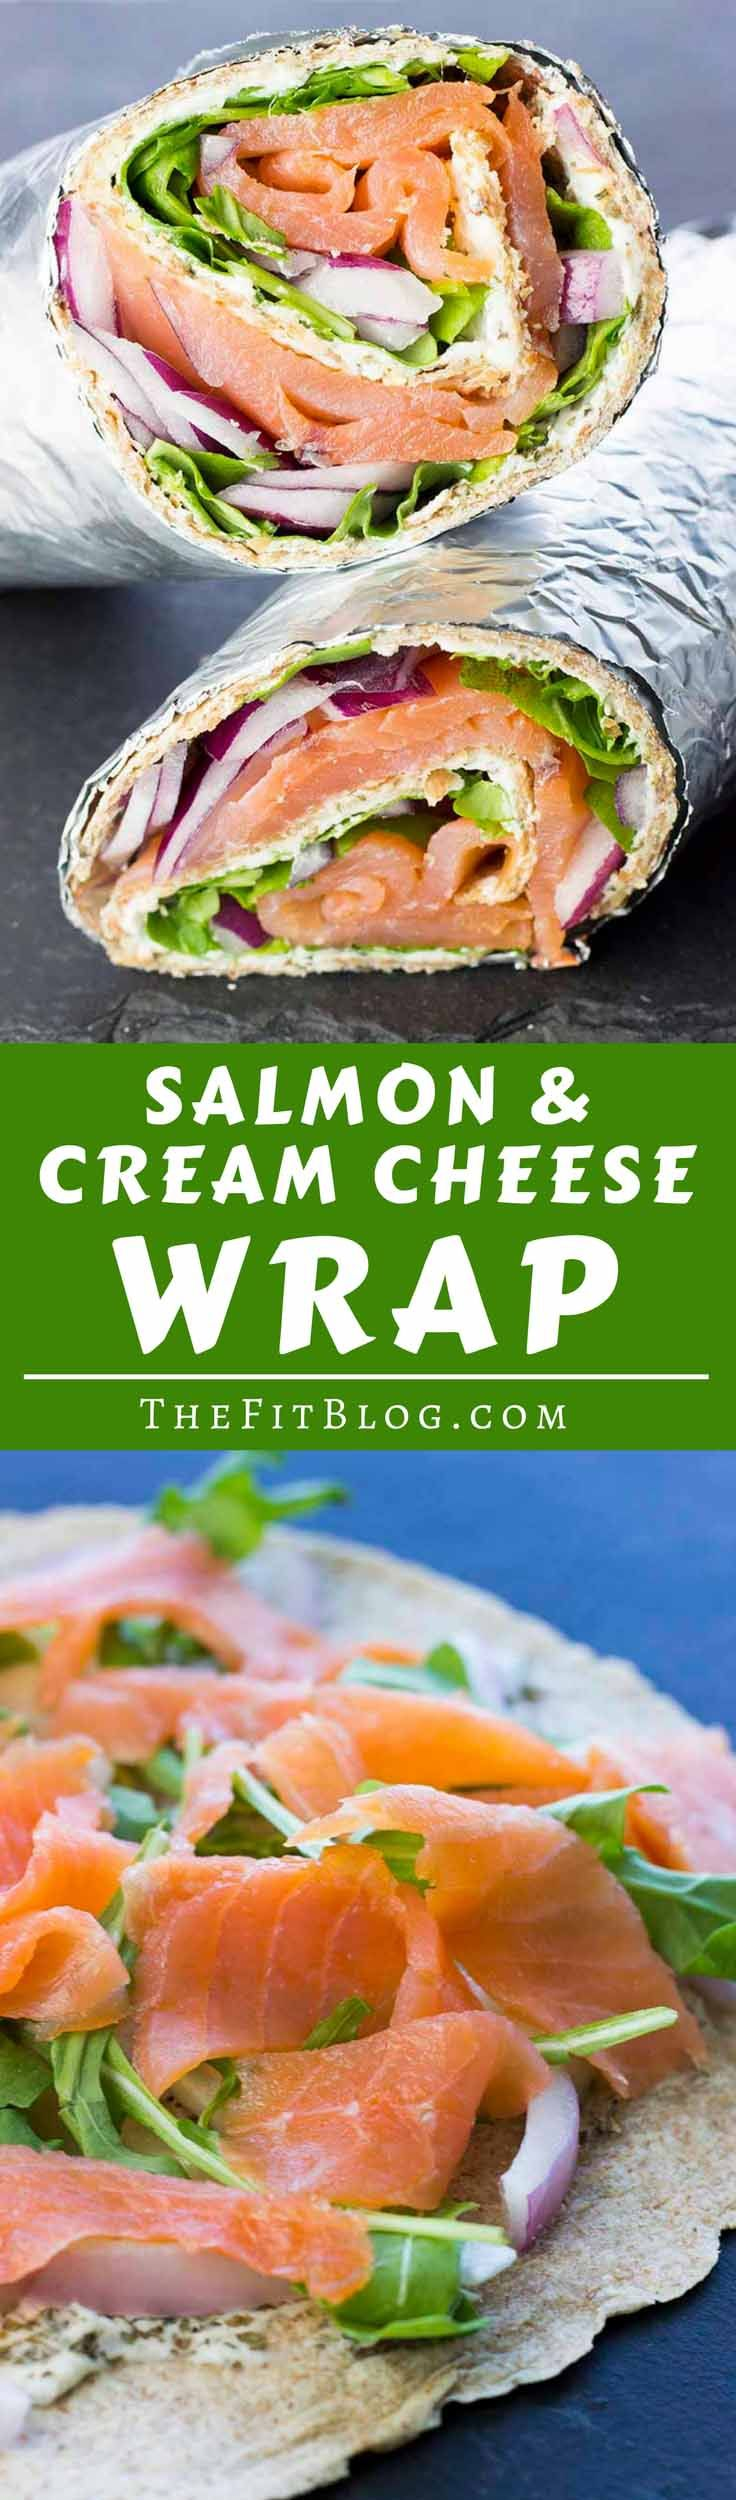 This Smoked Salmon and Cream Cheese Wrap is a delicious and healthy take on an iconic breakfast/brunch recipe. The perfect way to start the day   high protein   low carb   sugar free   gluten free   diabetes friendly    via @TheFitBlog